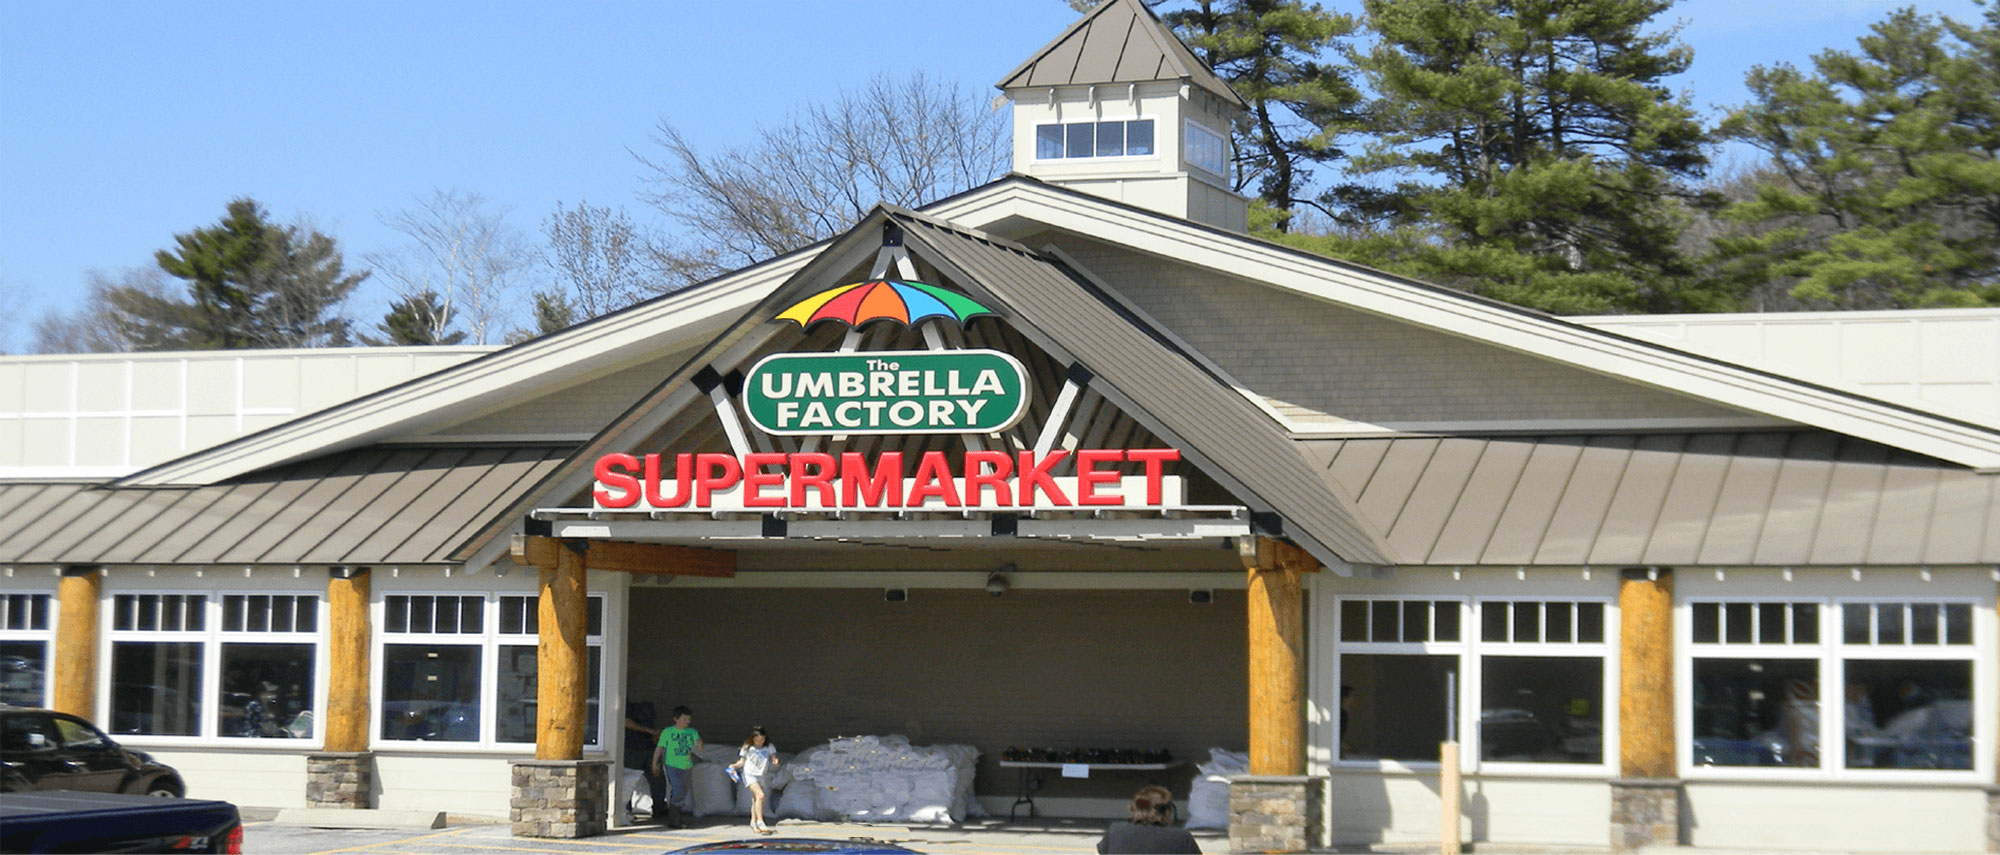 Umbrella Factory Supermarket is you local Hannaford supplied Shop 'n Save